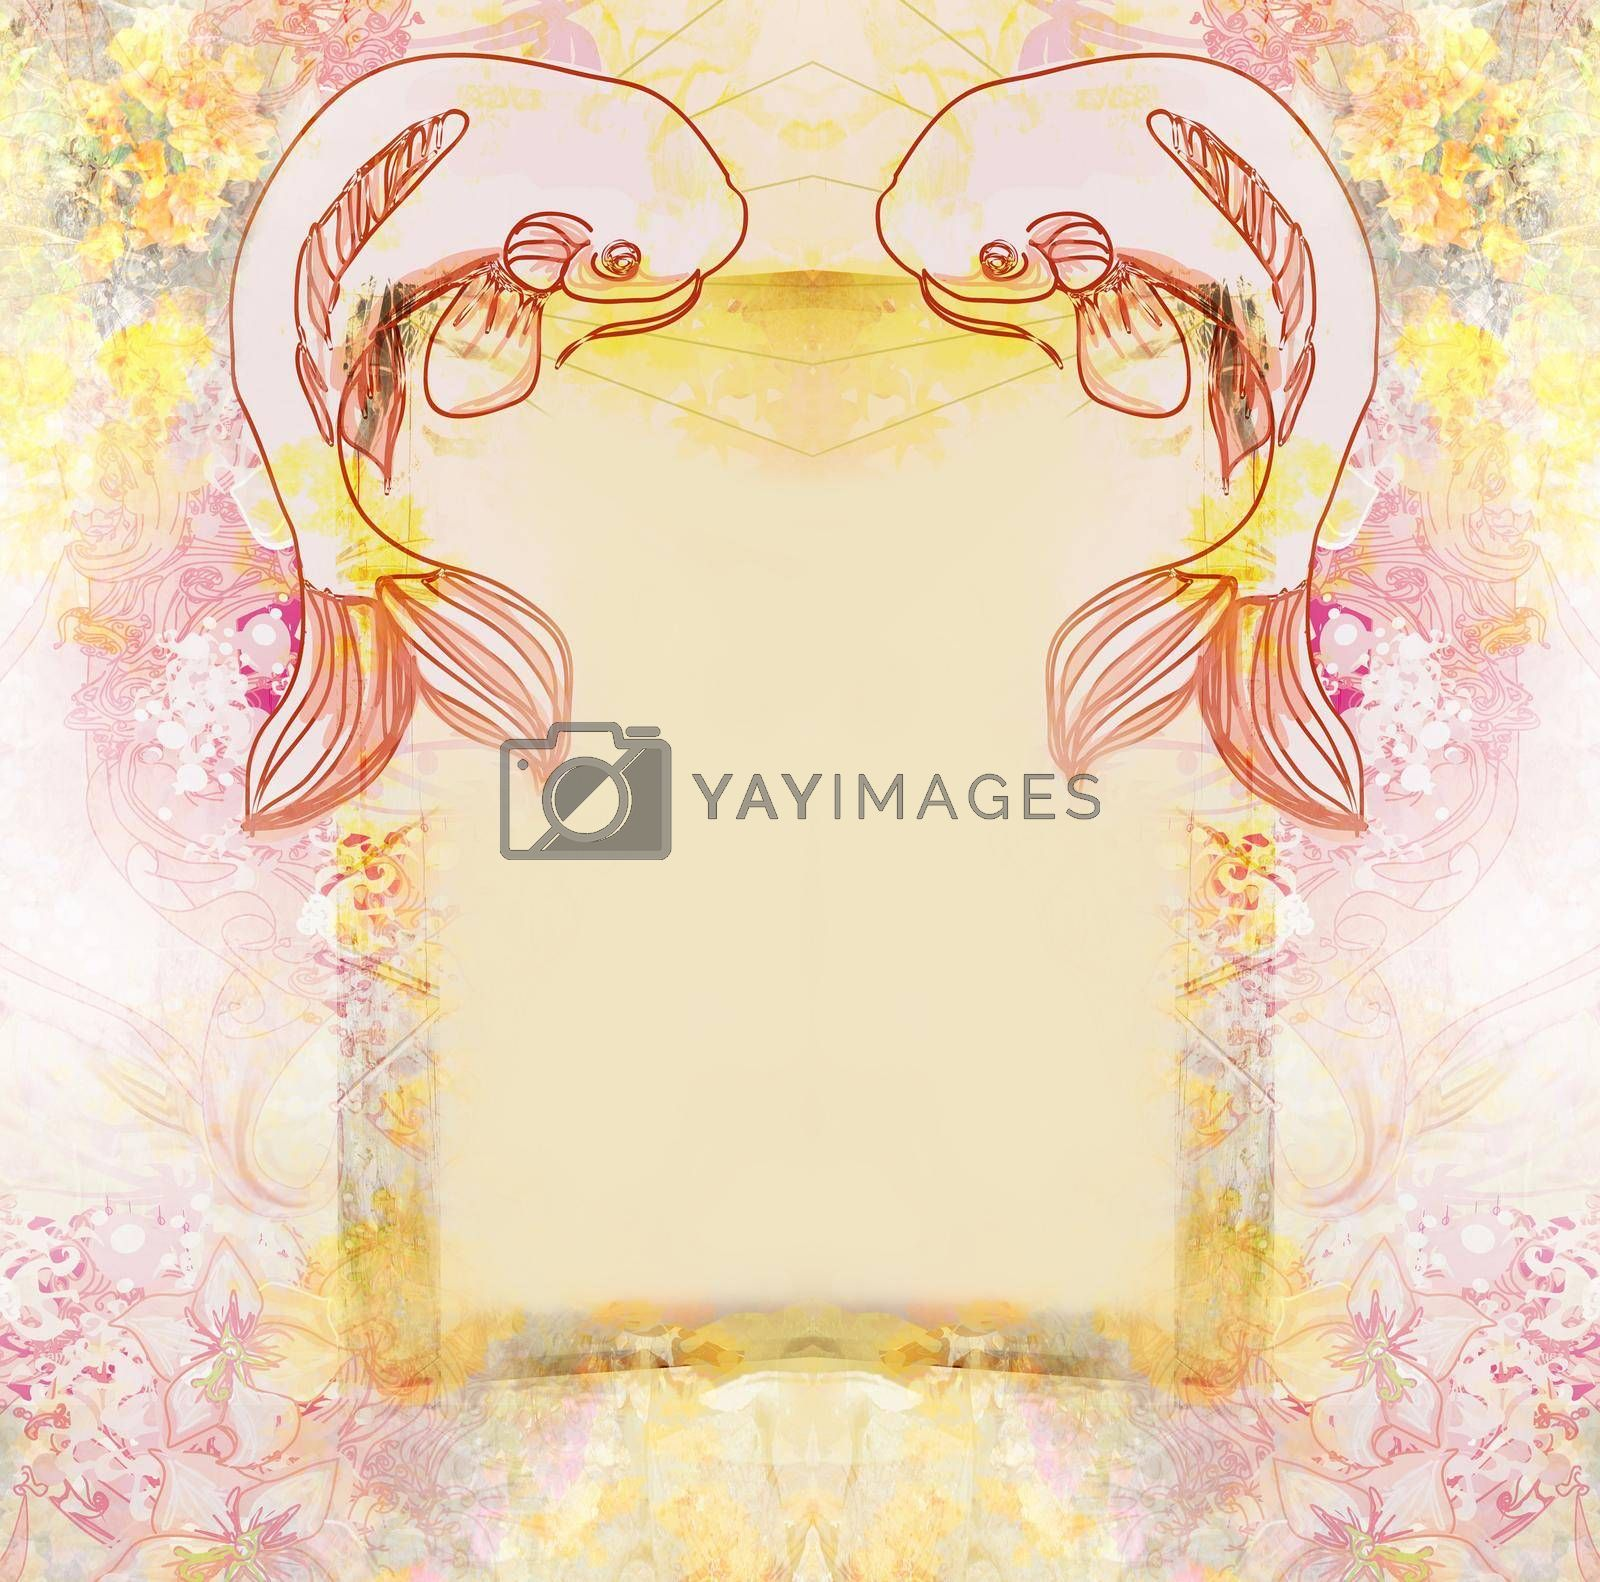 Royalty free image of Japanese koi fish decorative floral frame by JackyBrown